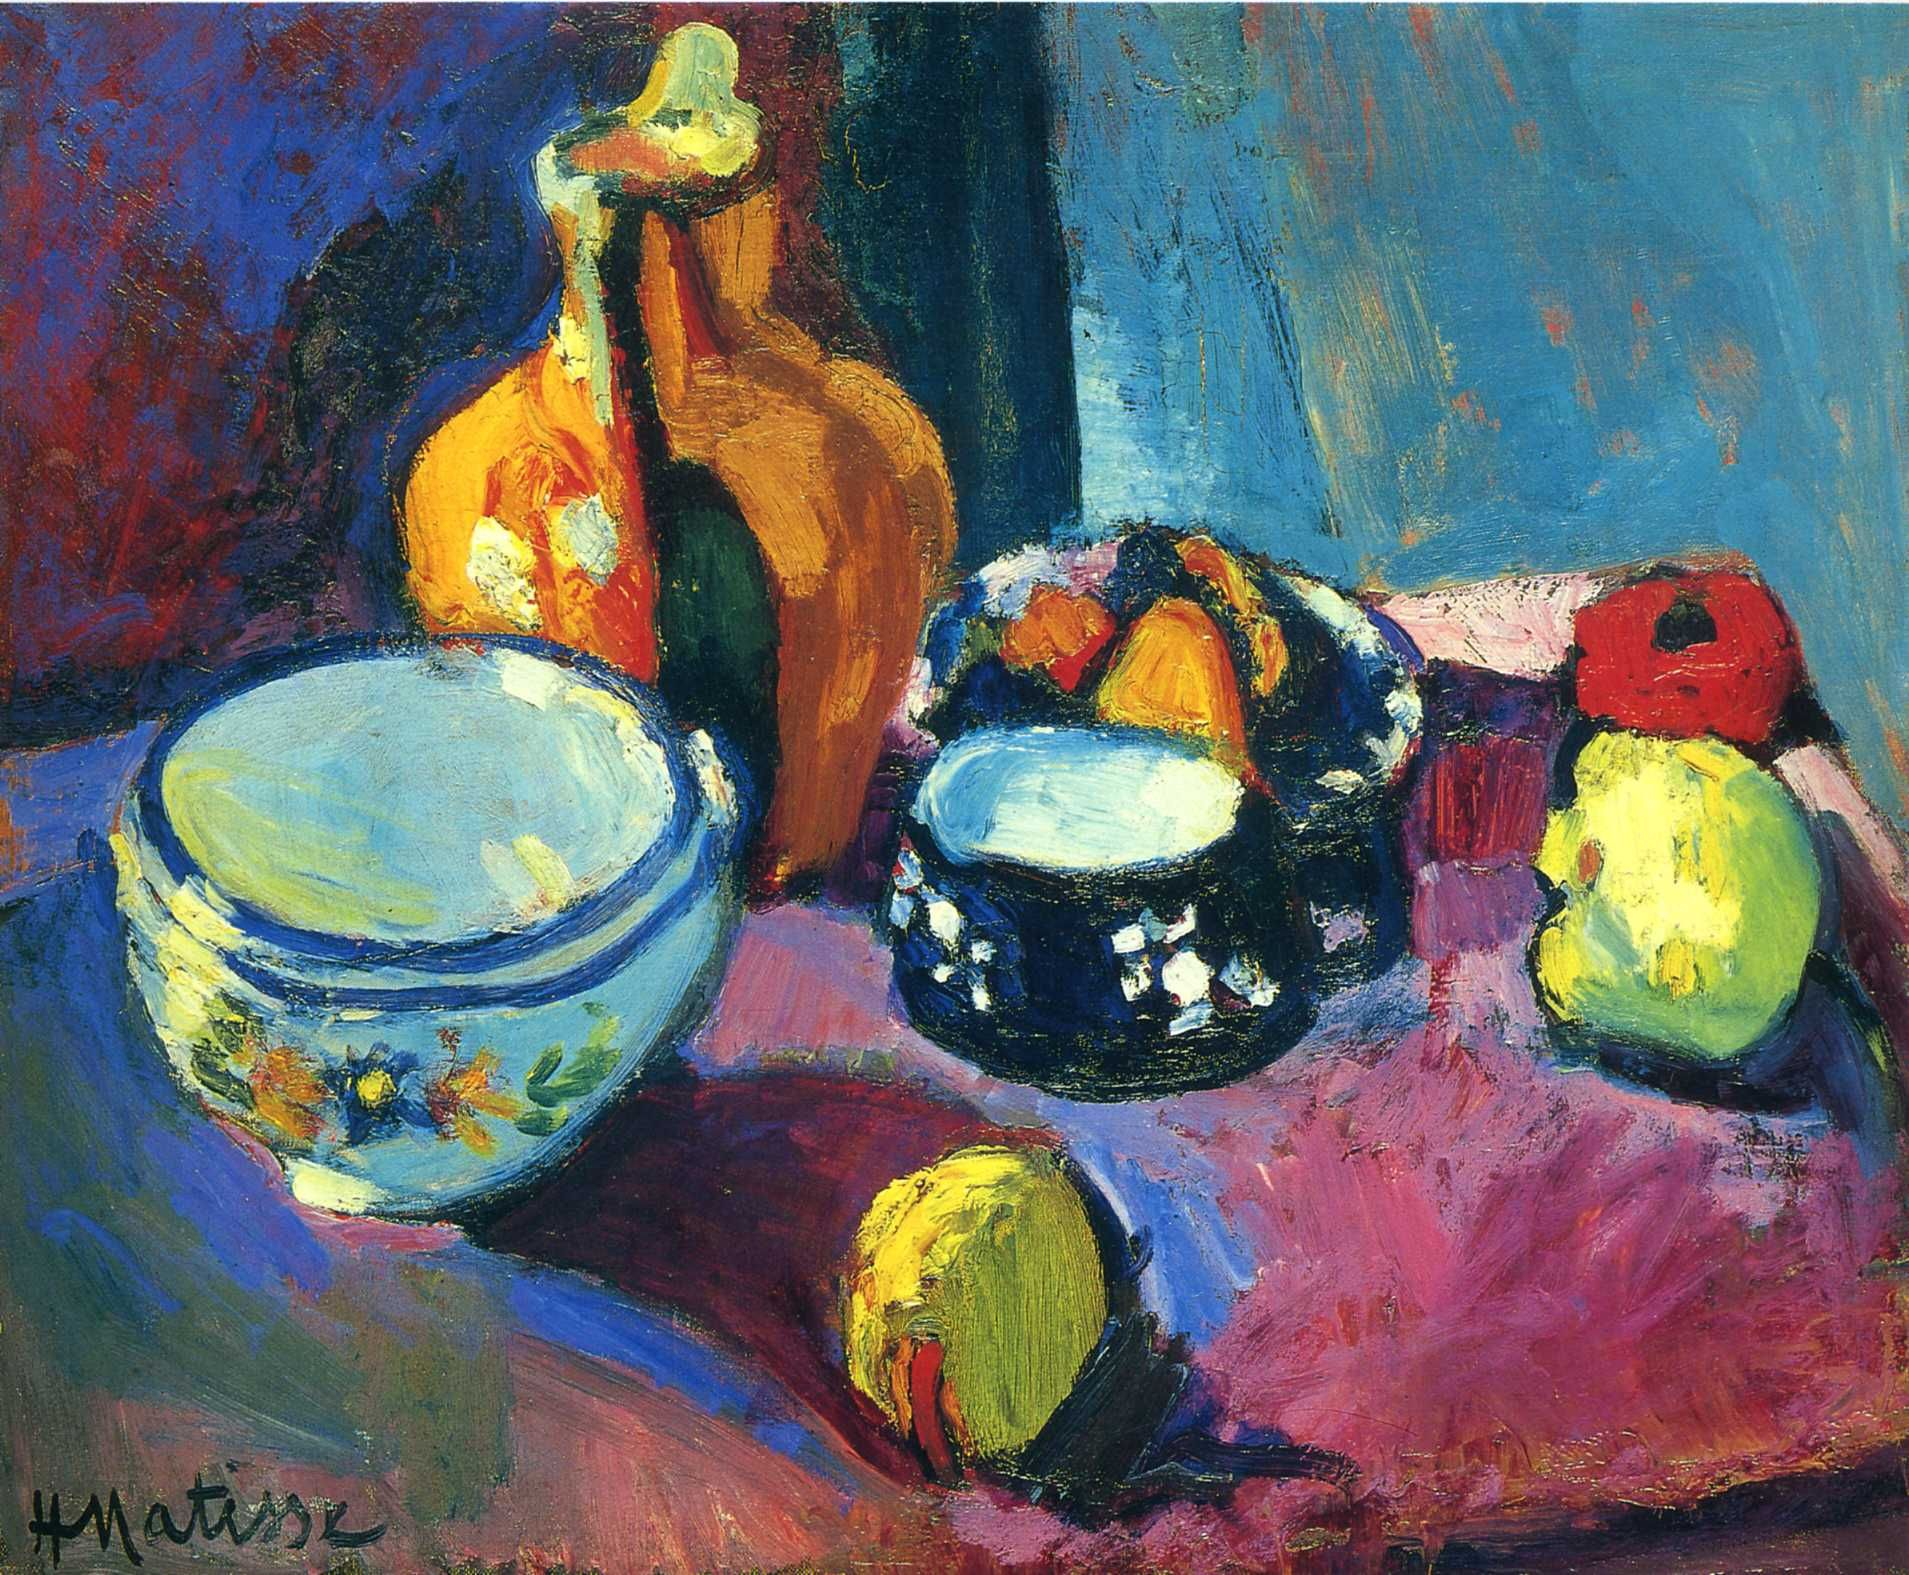 Onwijs Henri Matisse, Dishes and Fruit on a Red and Black Carpet, 1901 FZ-41